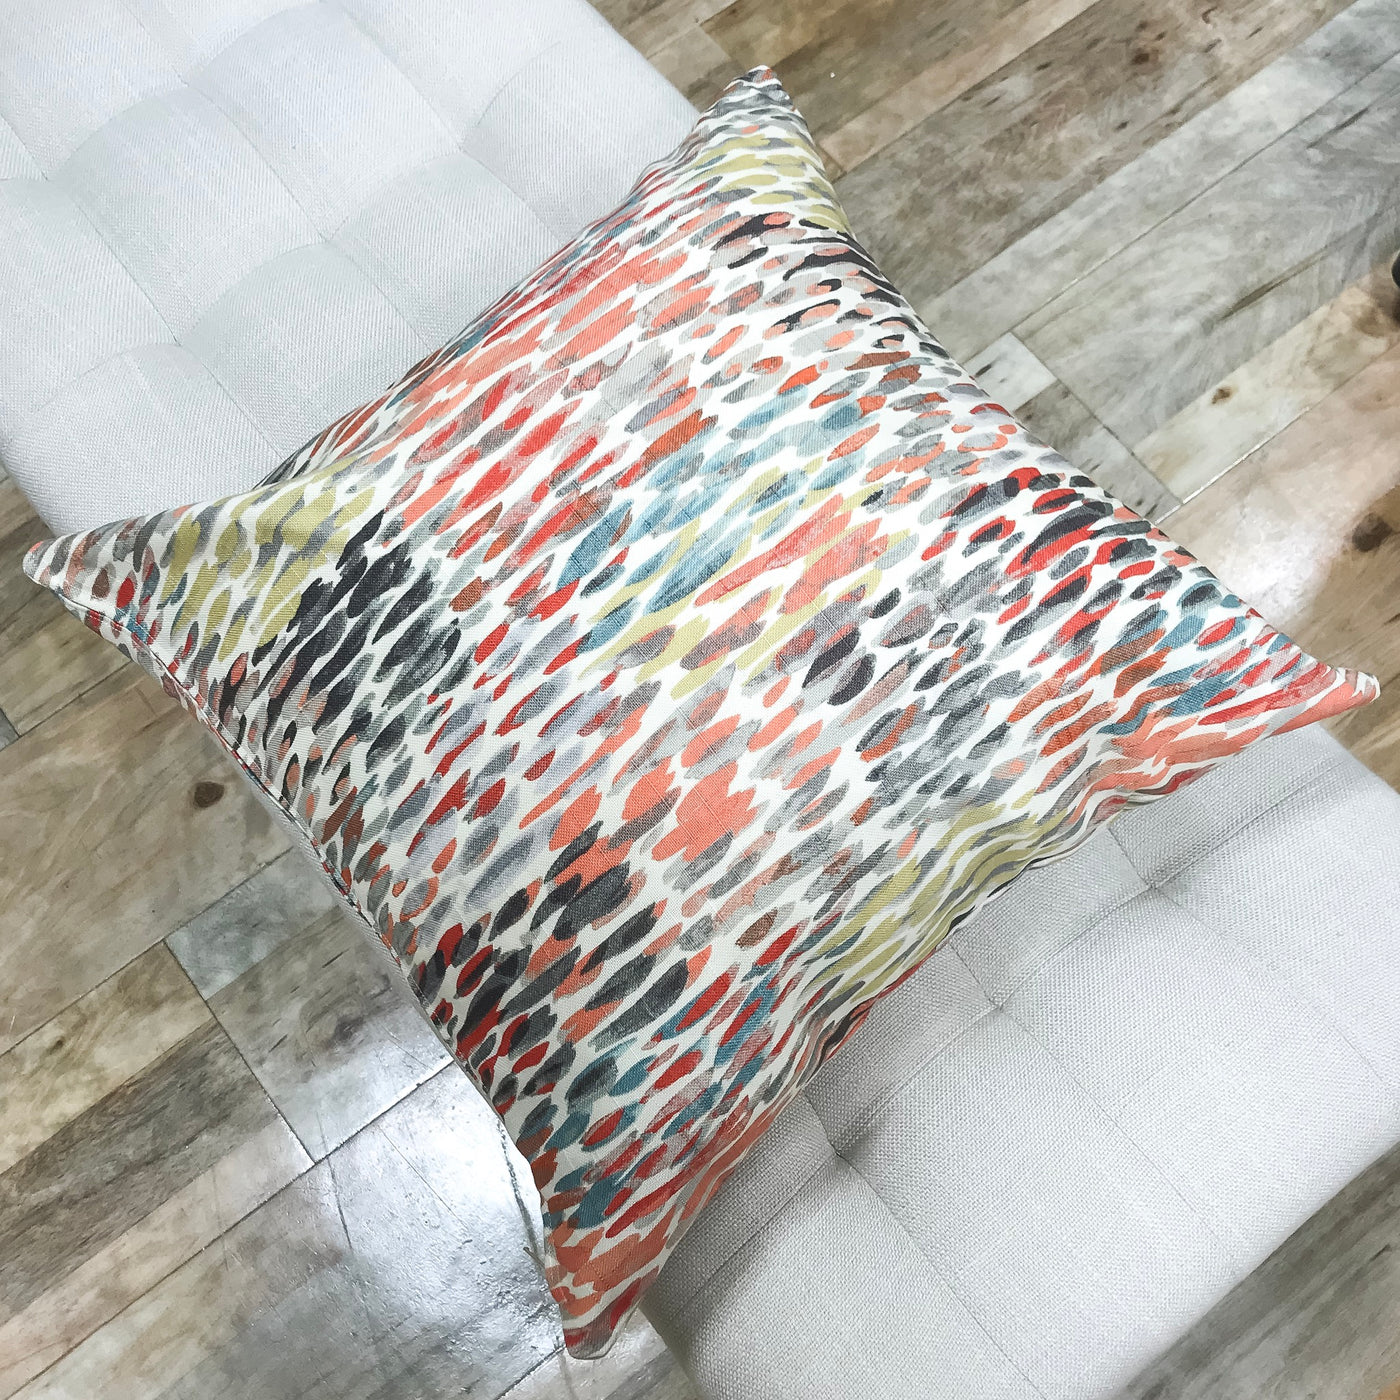 Improve your space with colorful pillows - DOLLY - Studio Pillows